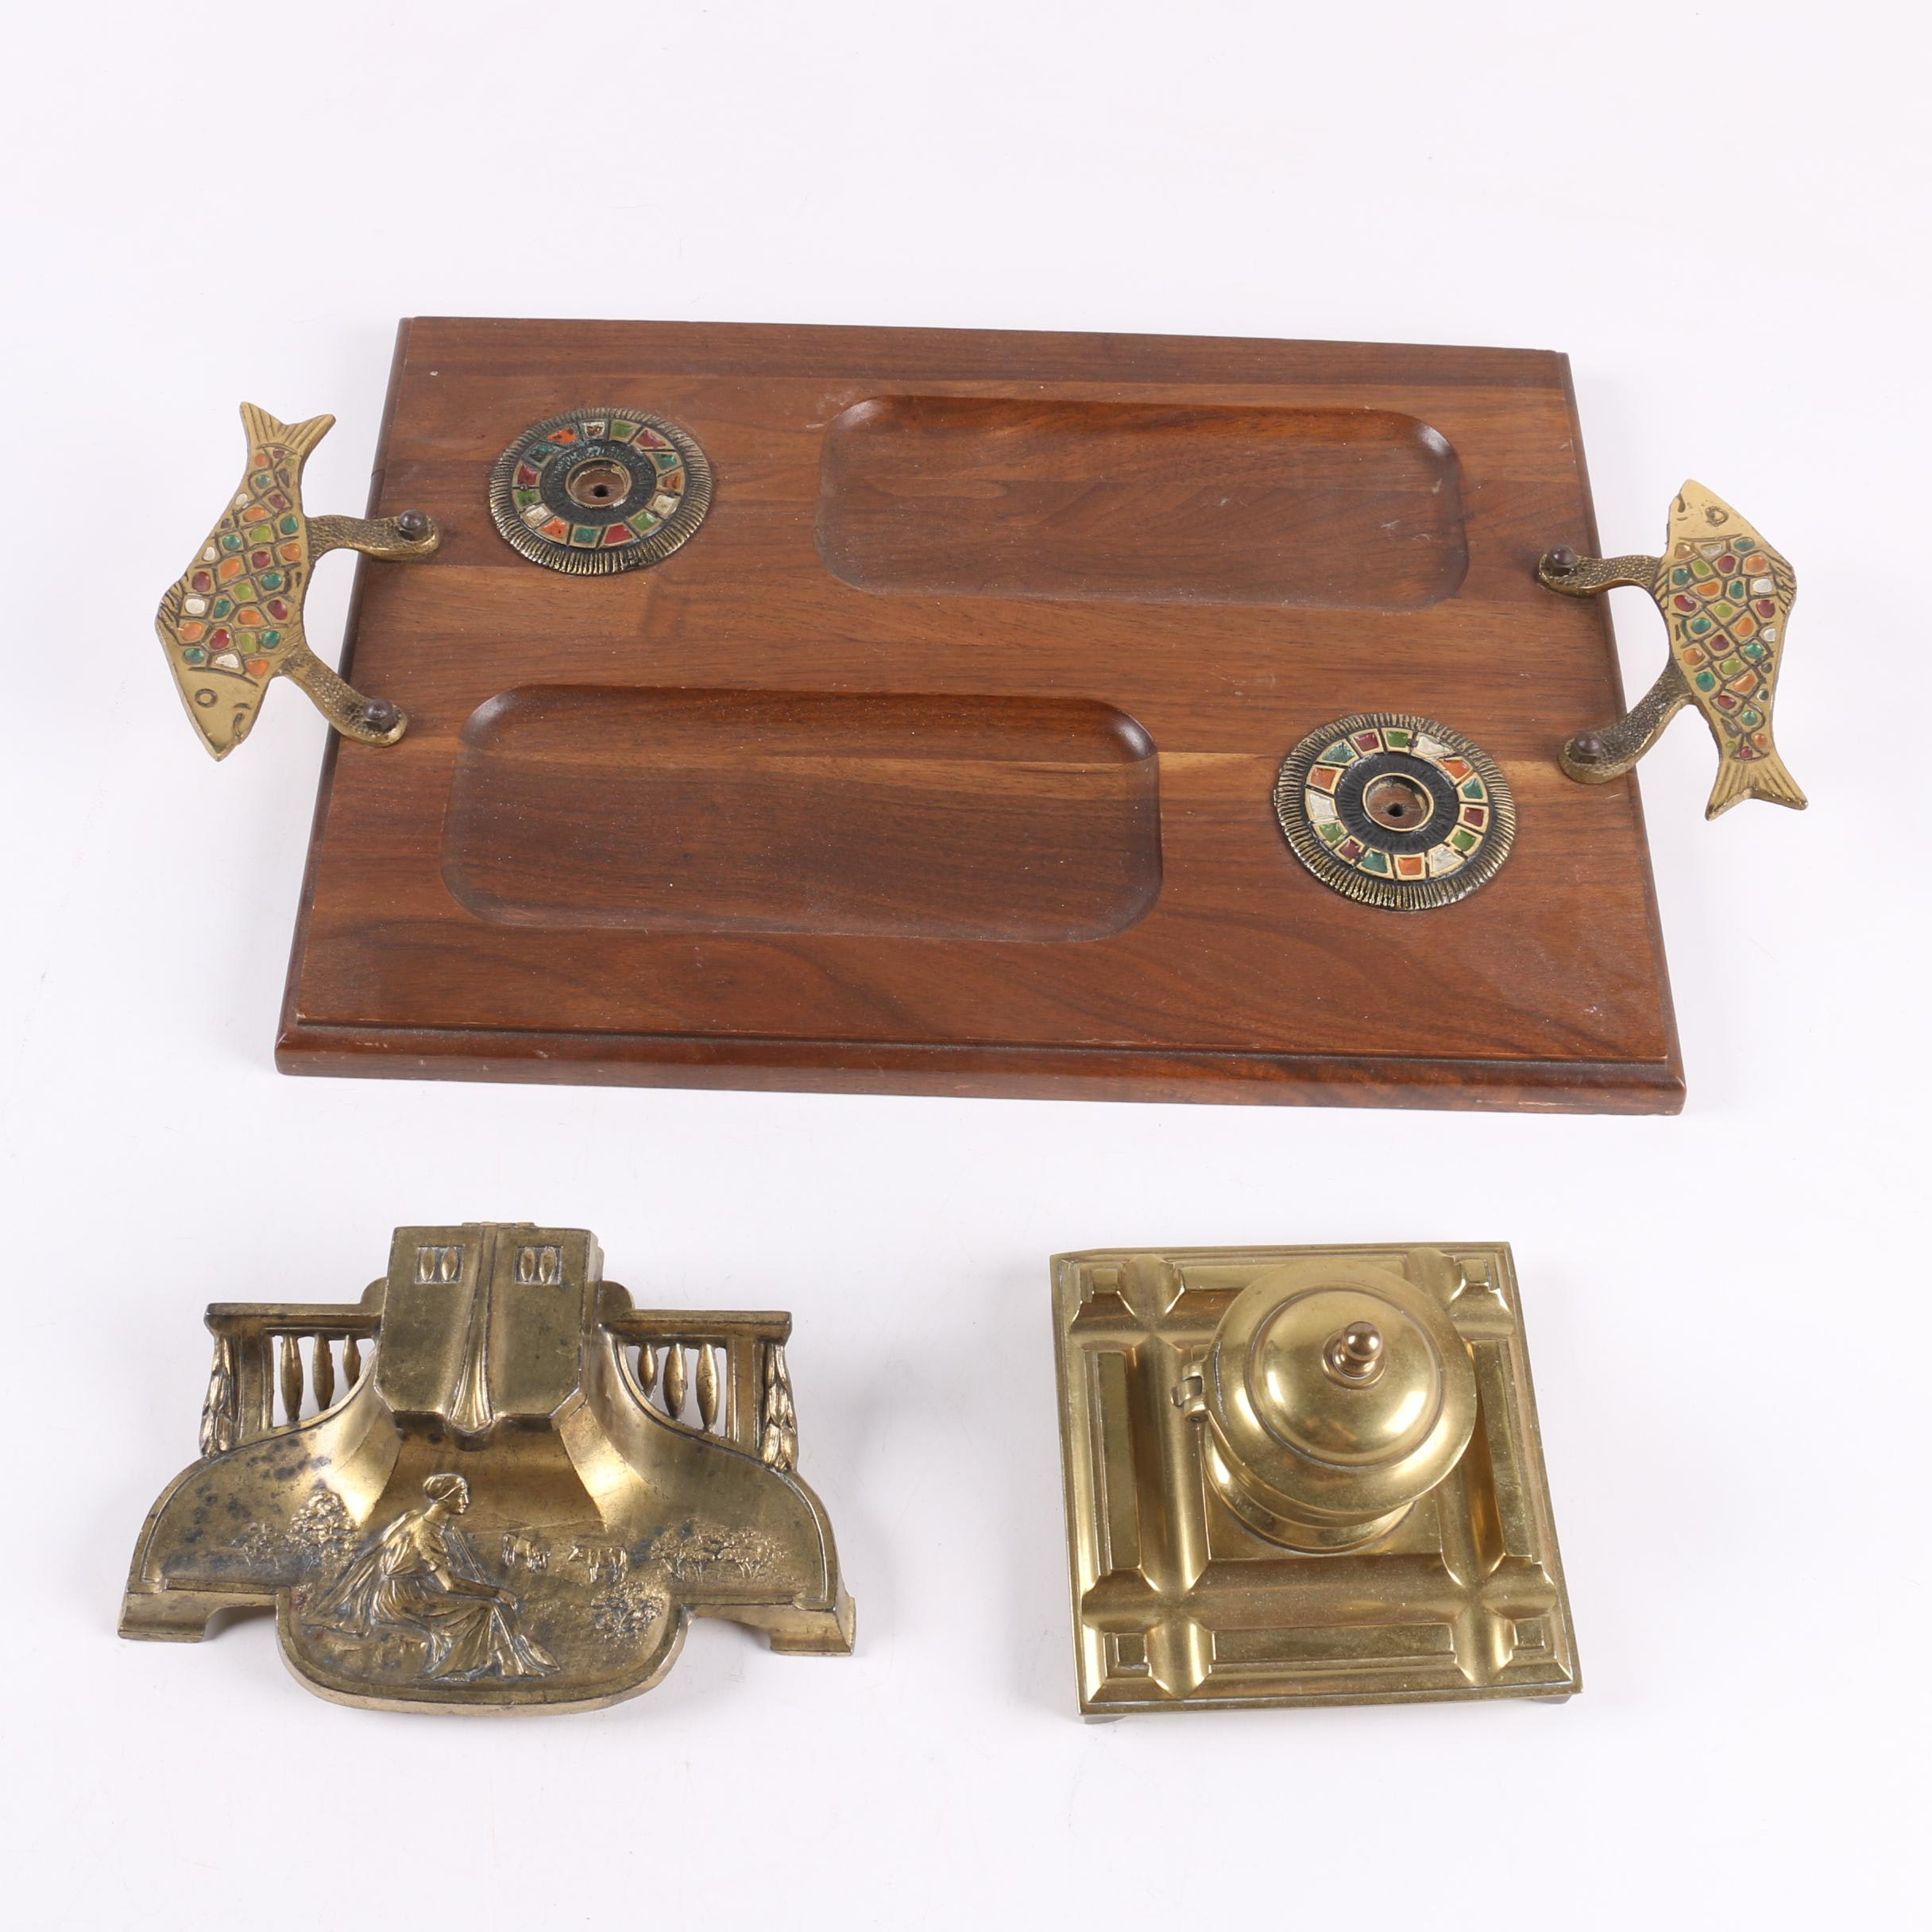 Desk Accessories Including Vintage Inkwells